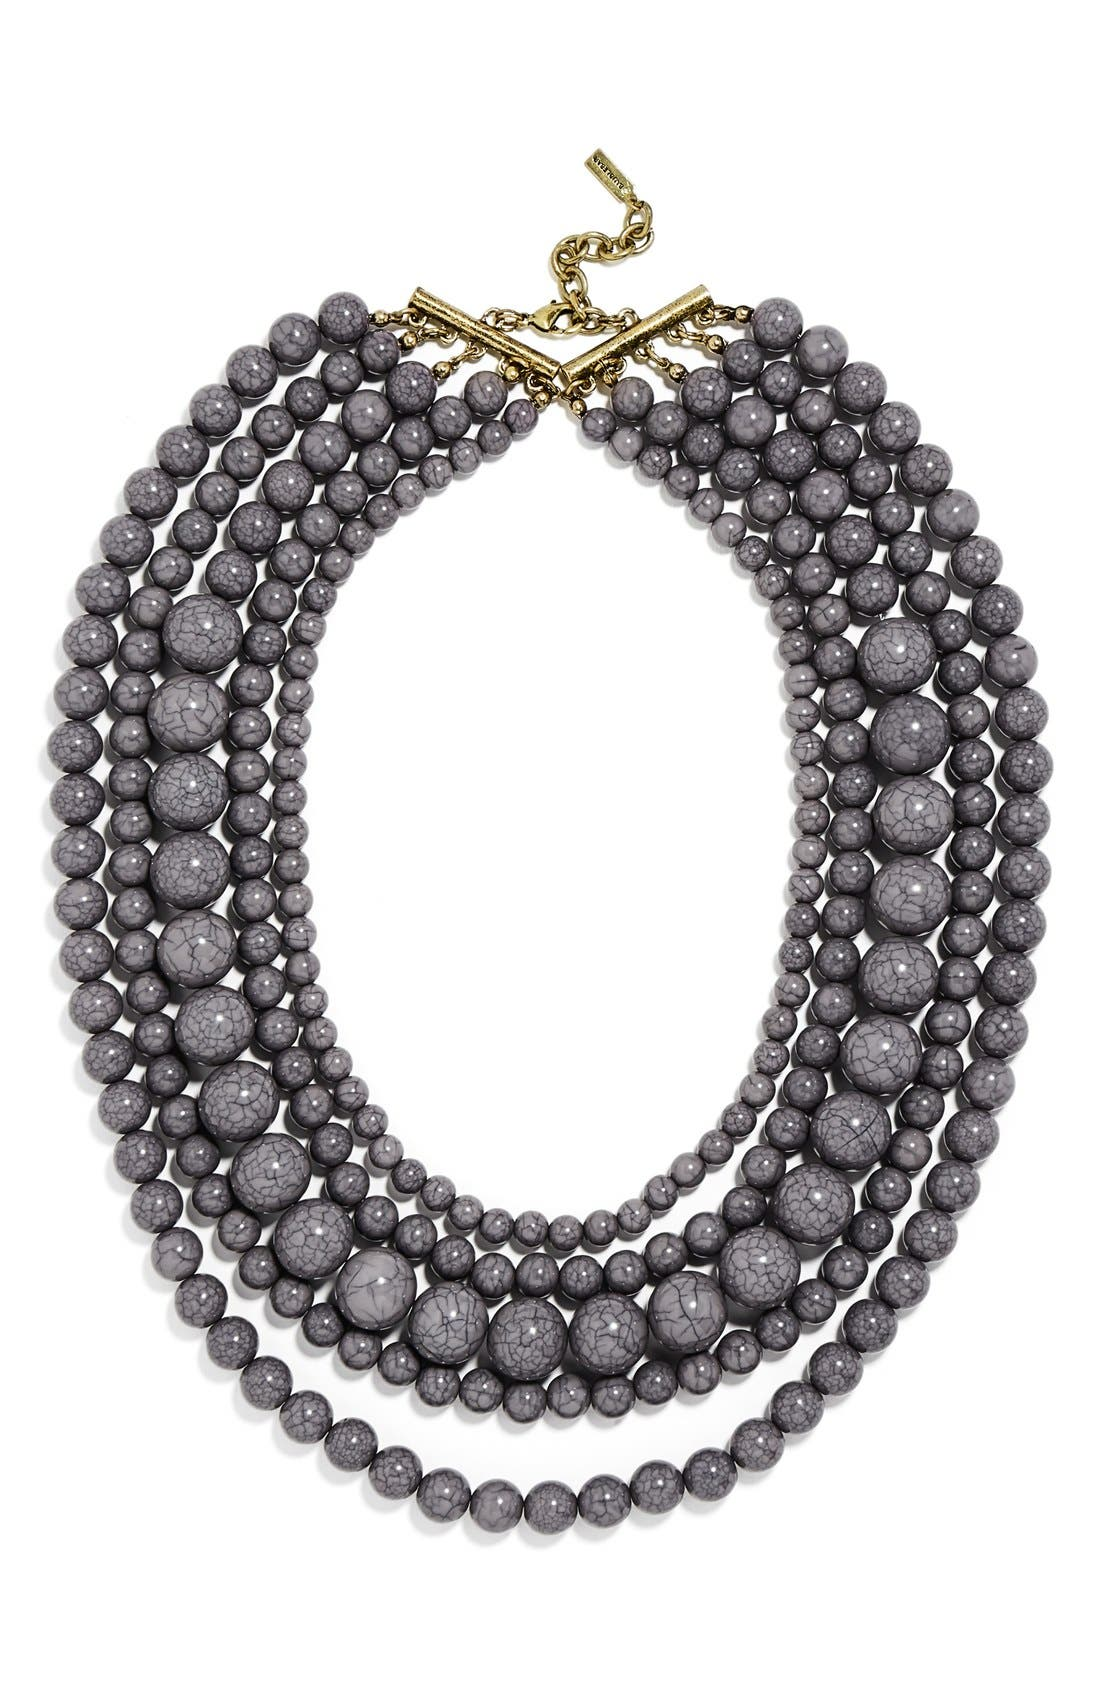 'Globe' Multistrand Beaded Necklace,                         Main,                         color, 021